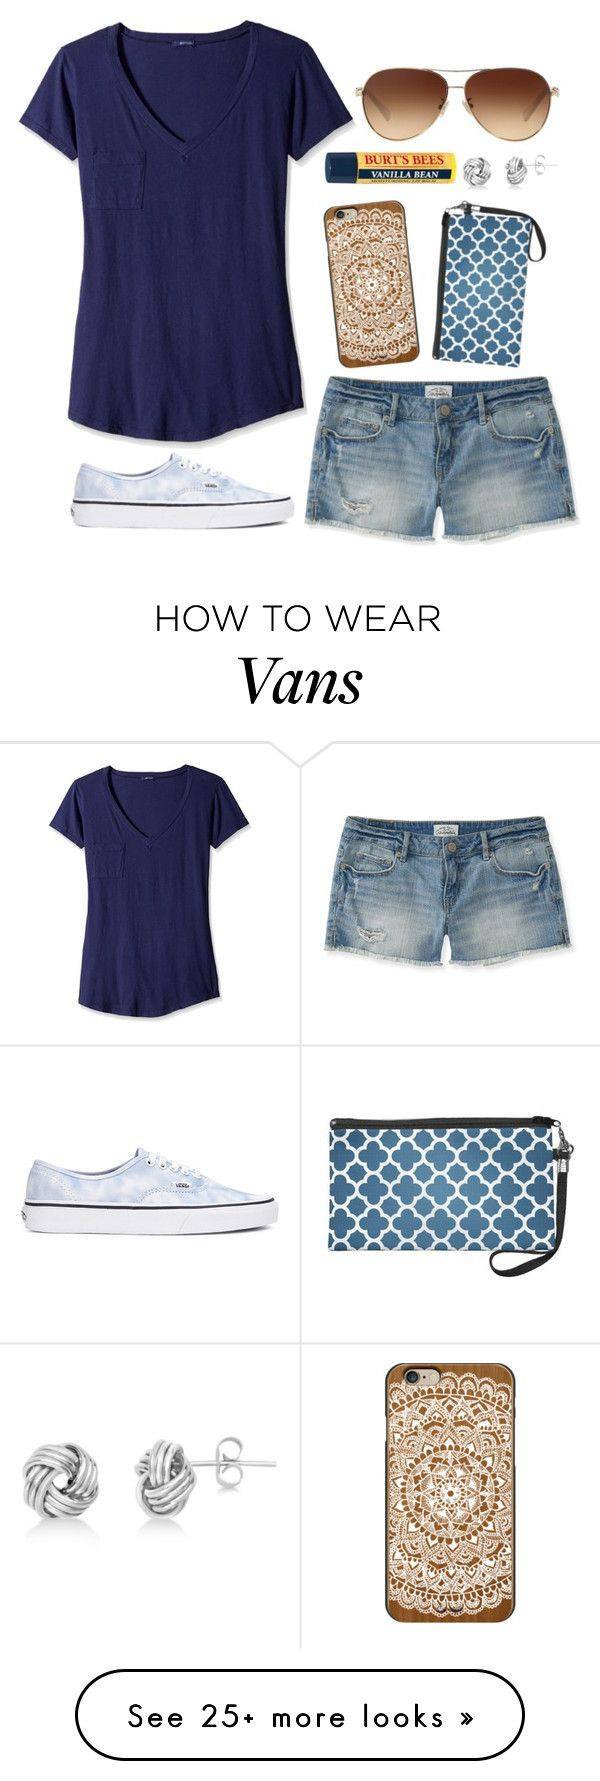 """""""Casual Outfit"""" by twaayy on Polyvore featuring LAmade, Aéropostale, Vans, Casetify, Coach, Allurez and Burt's Bees"""